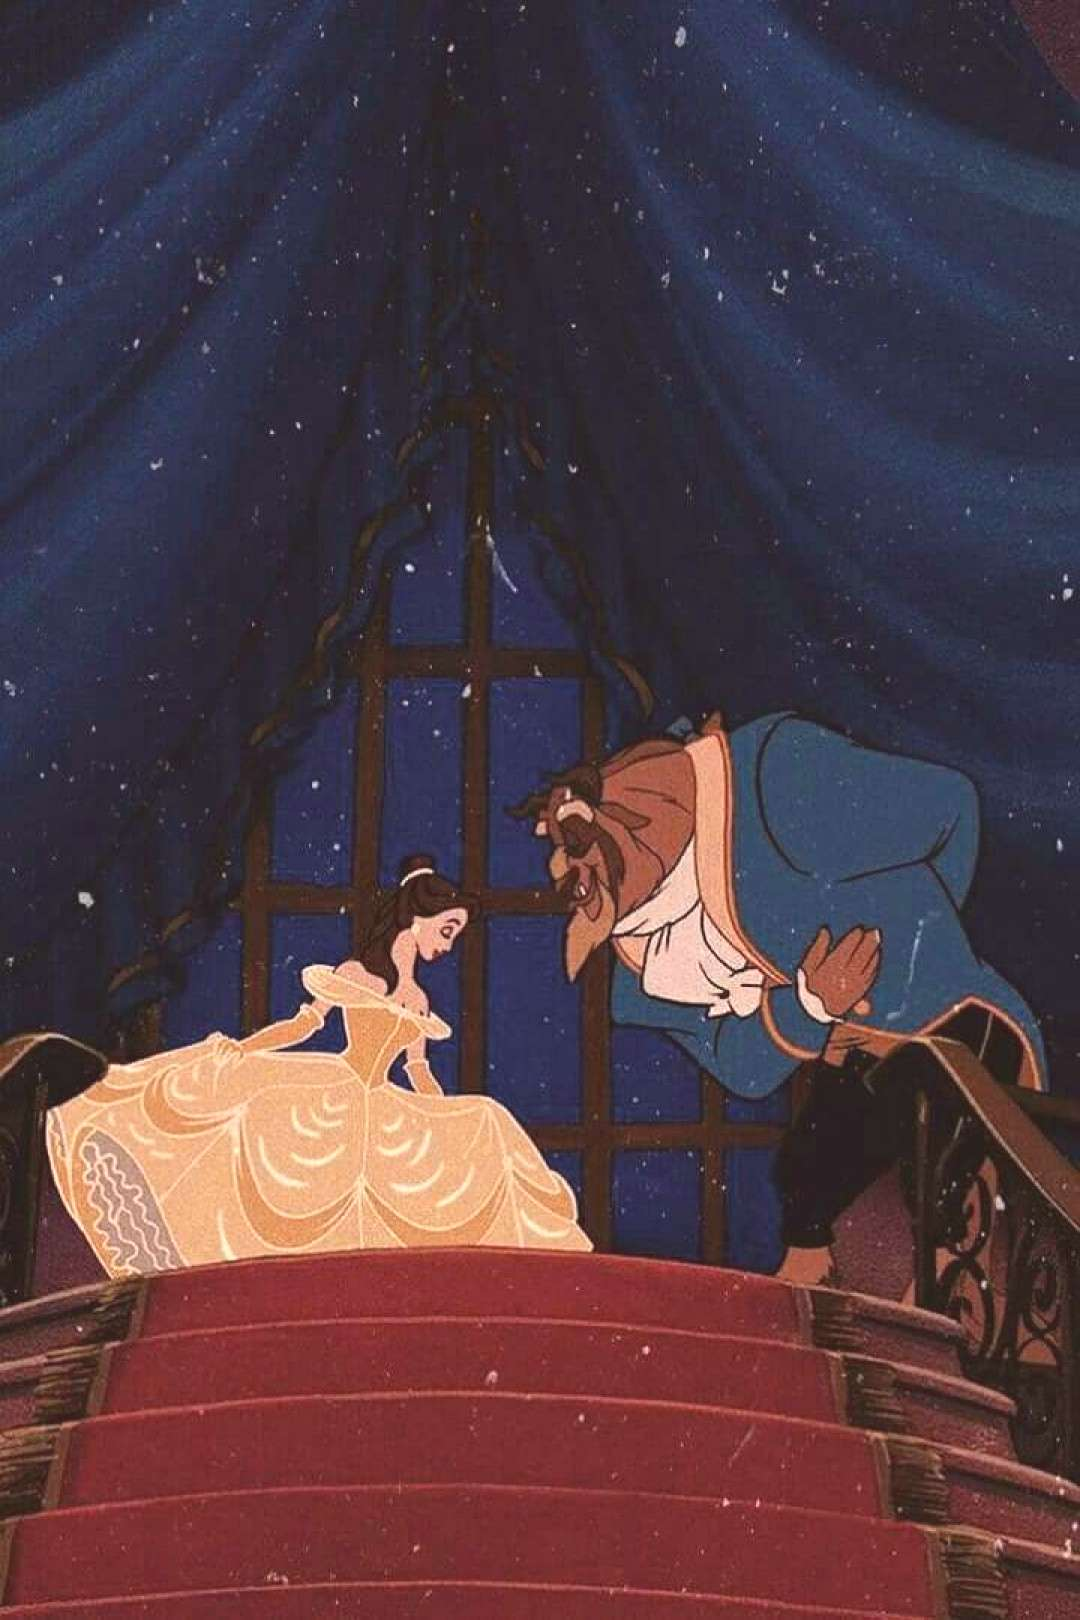 Beauty and the Beast film - wallpapers -  Beauty and the Beast film – wallpaper  -